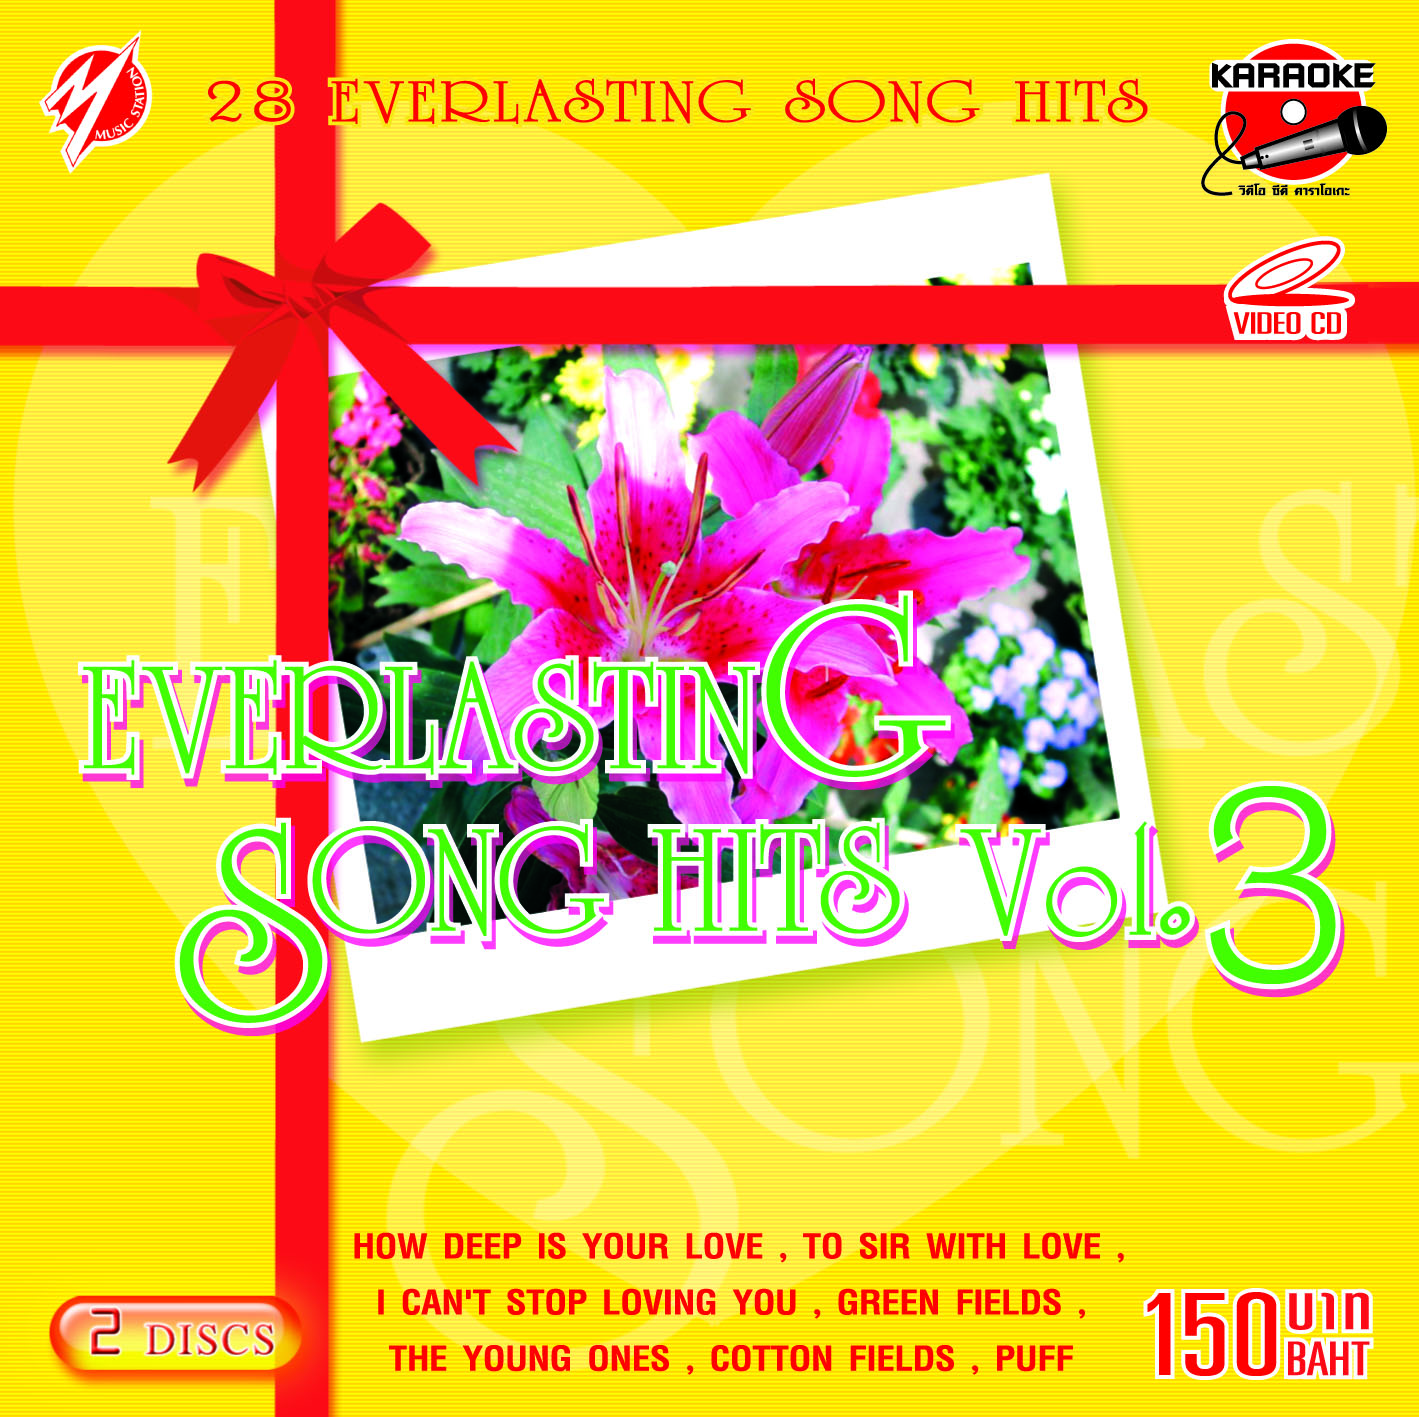 VCD THE EVERLASTING SONG HITS 3